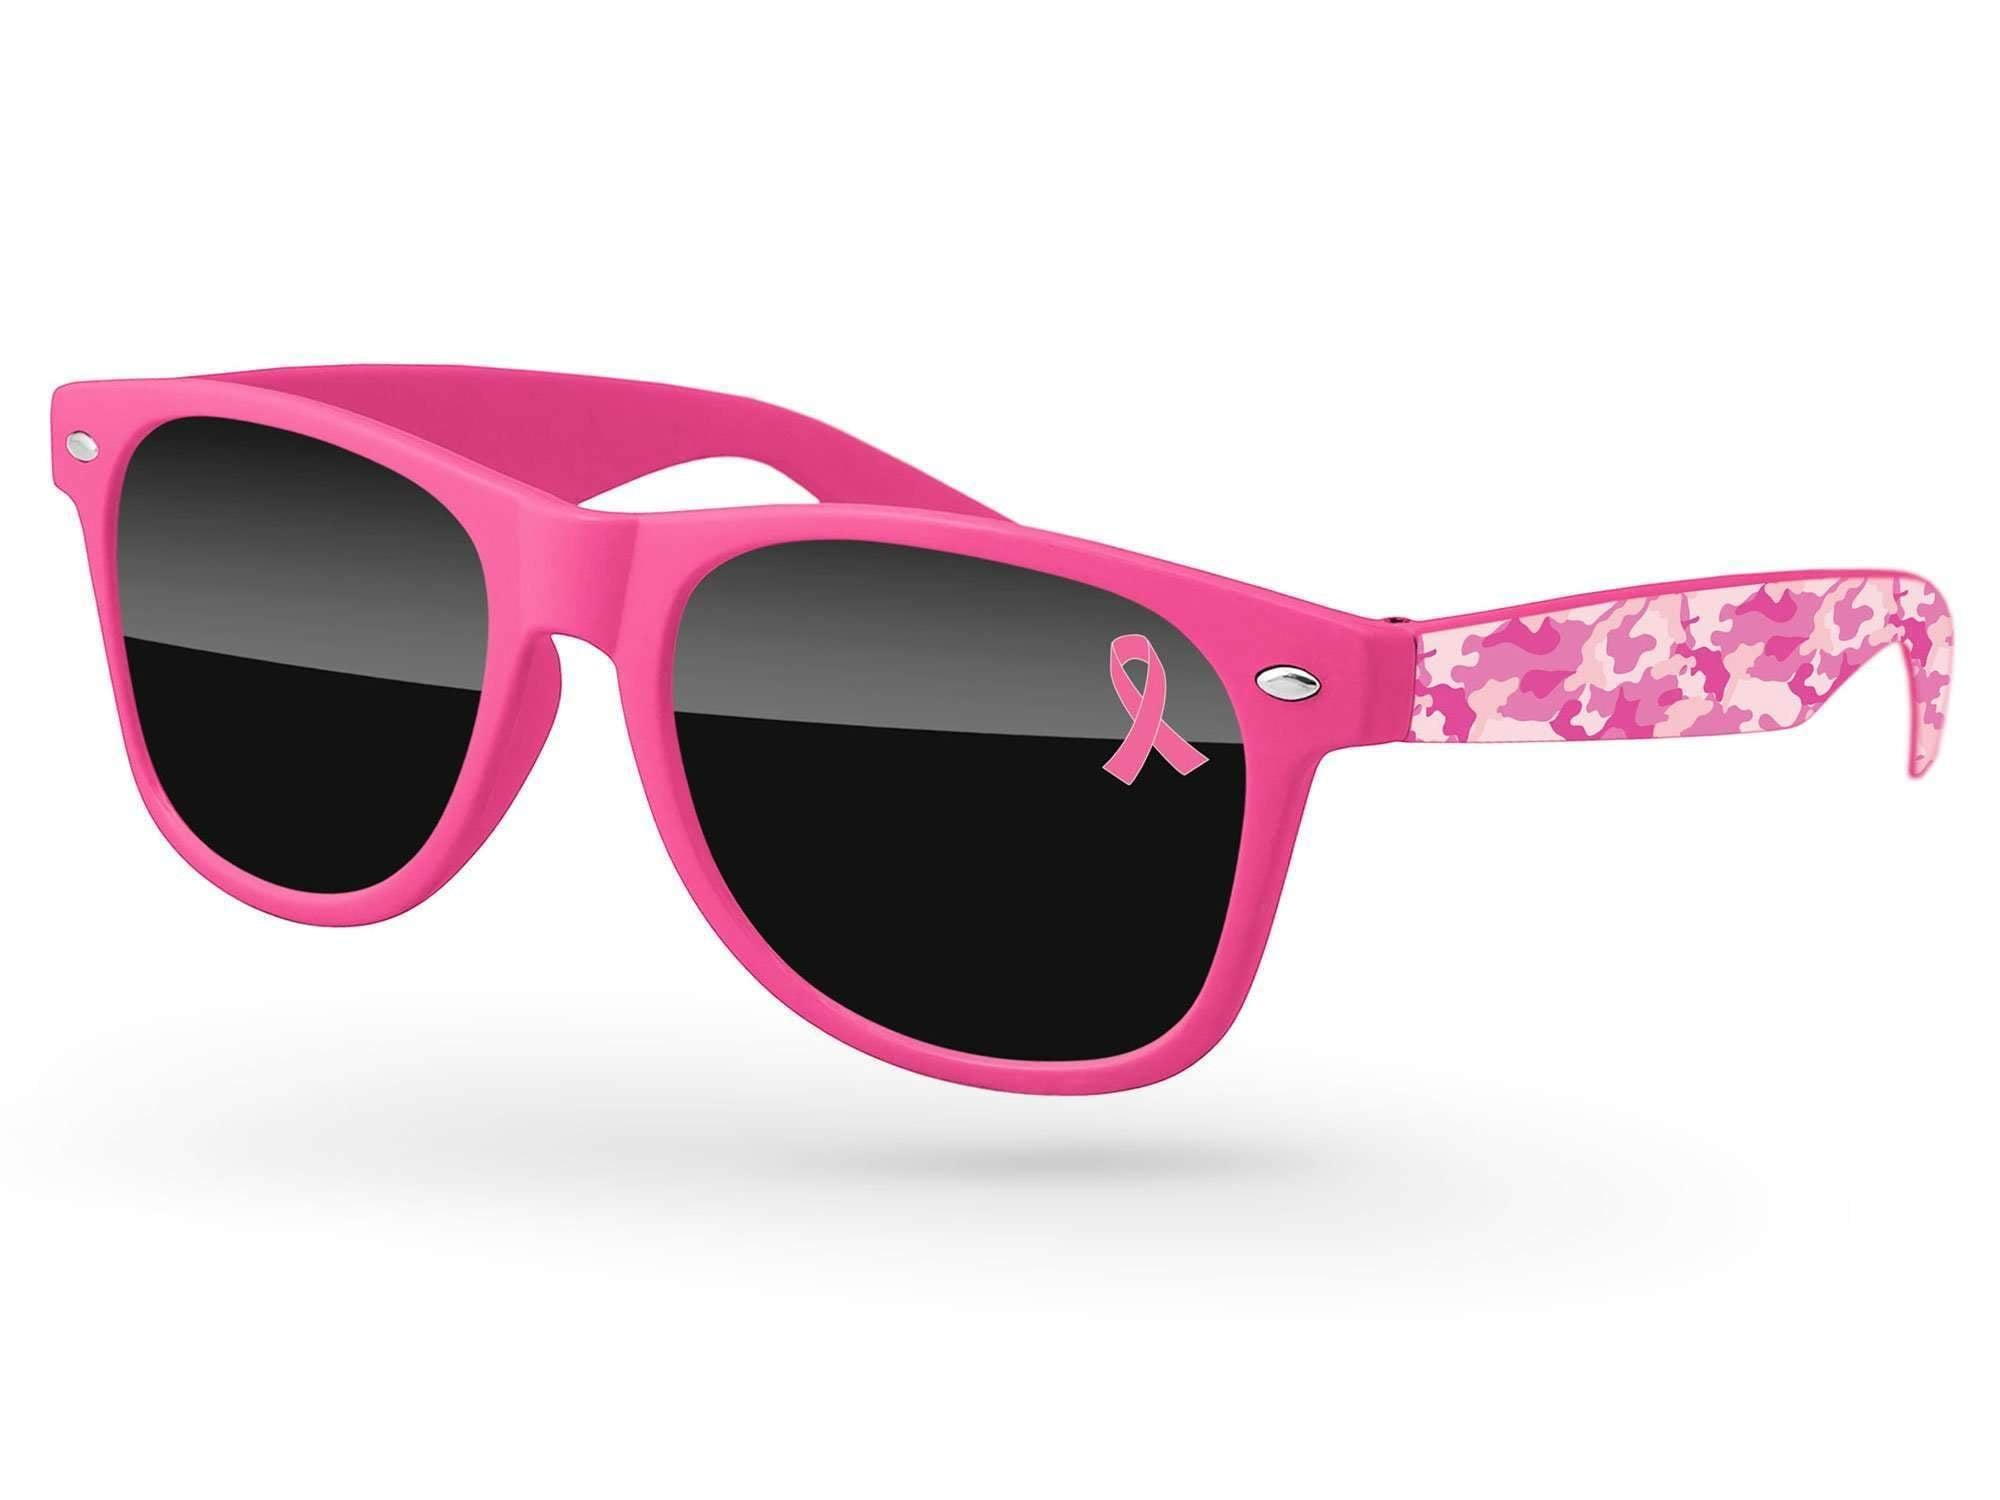 RD550 - Breast Cancer Awareness Retro Promotional Sunglasses w/ 1-color lens imprint & full-color arm heat transfer